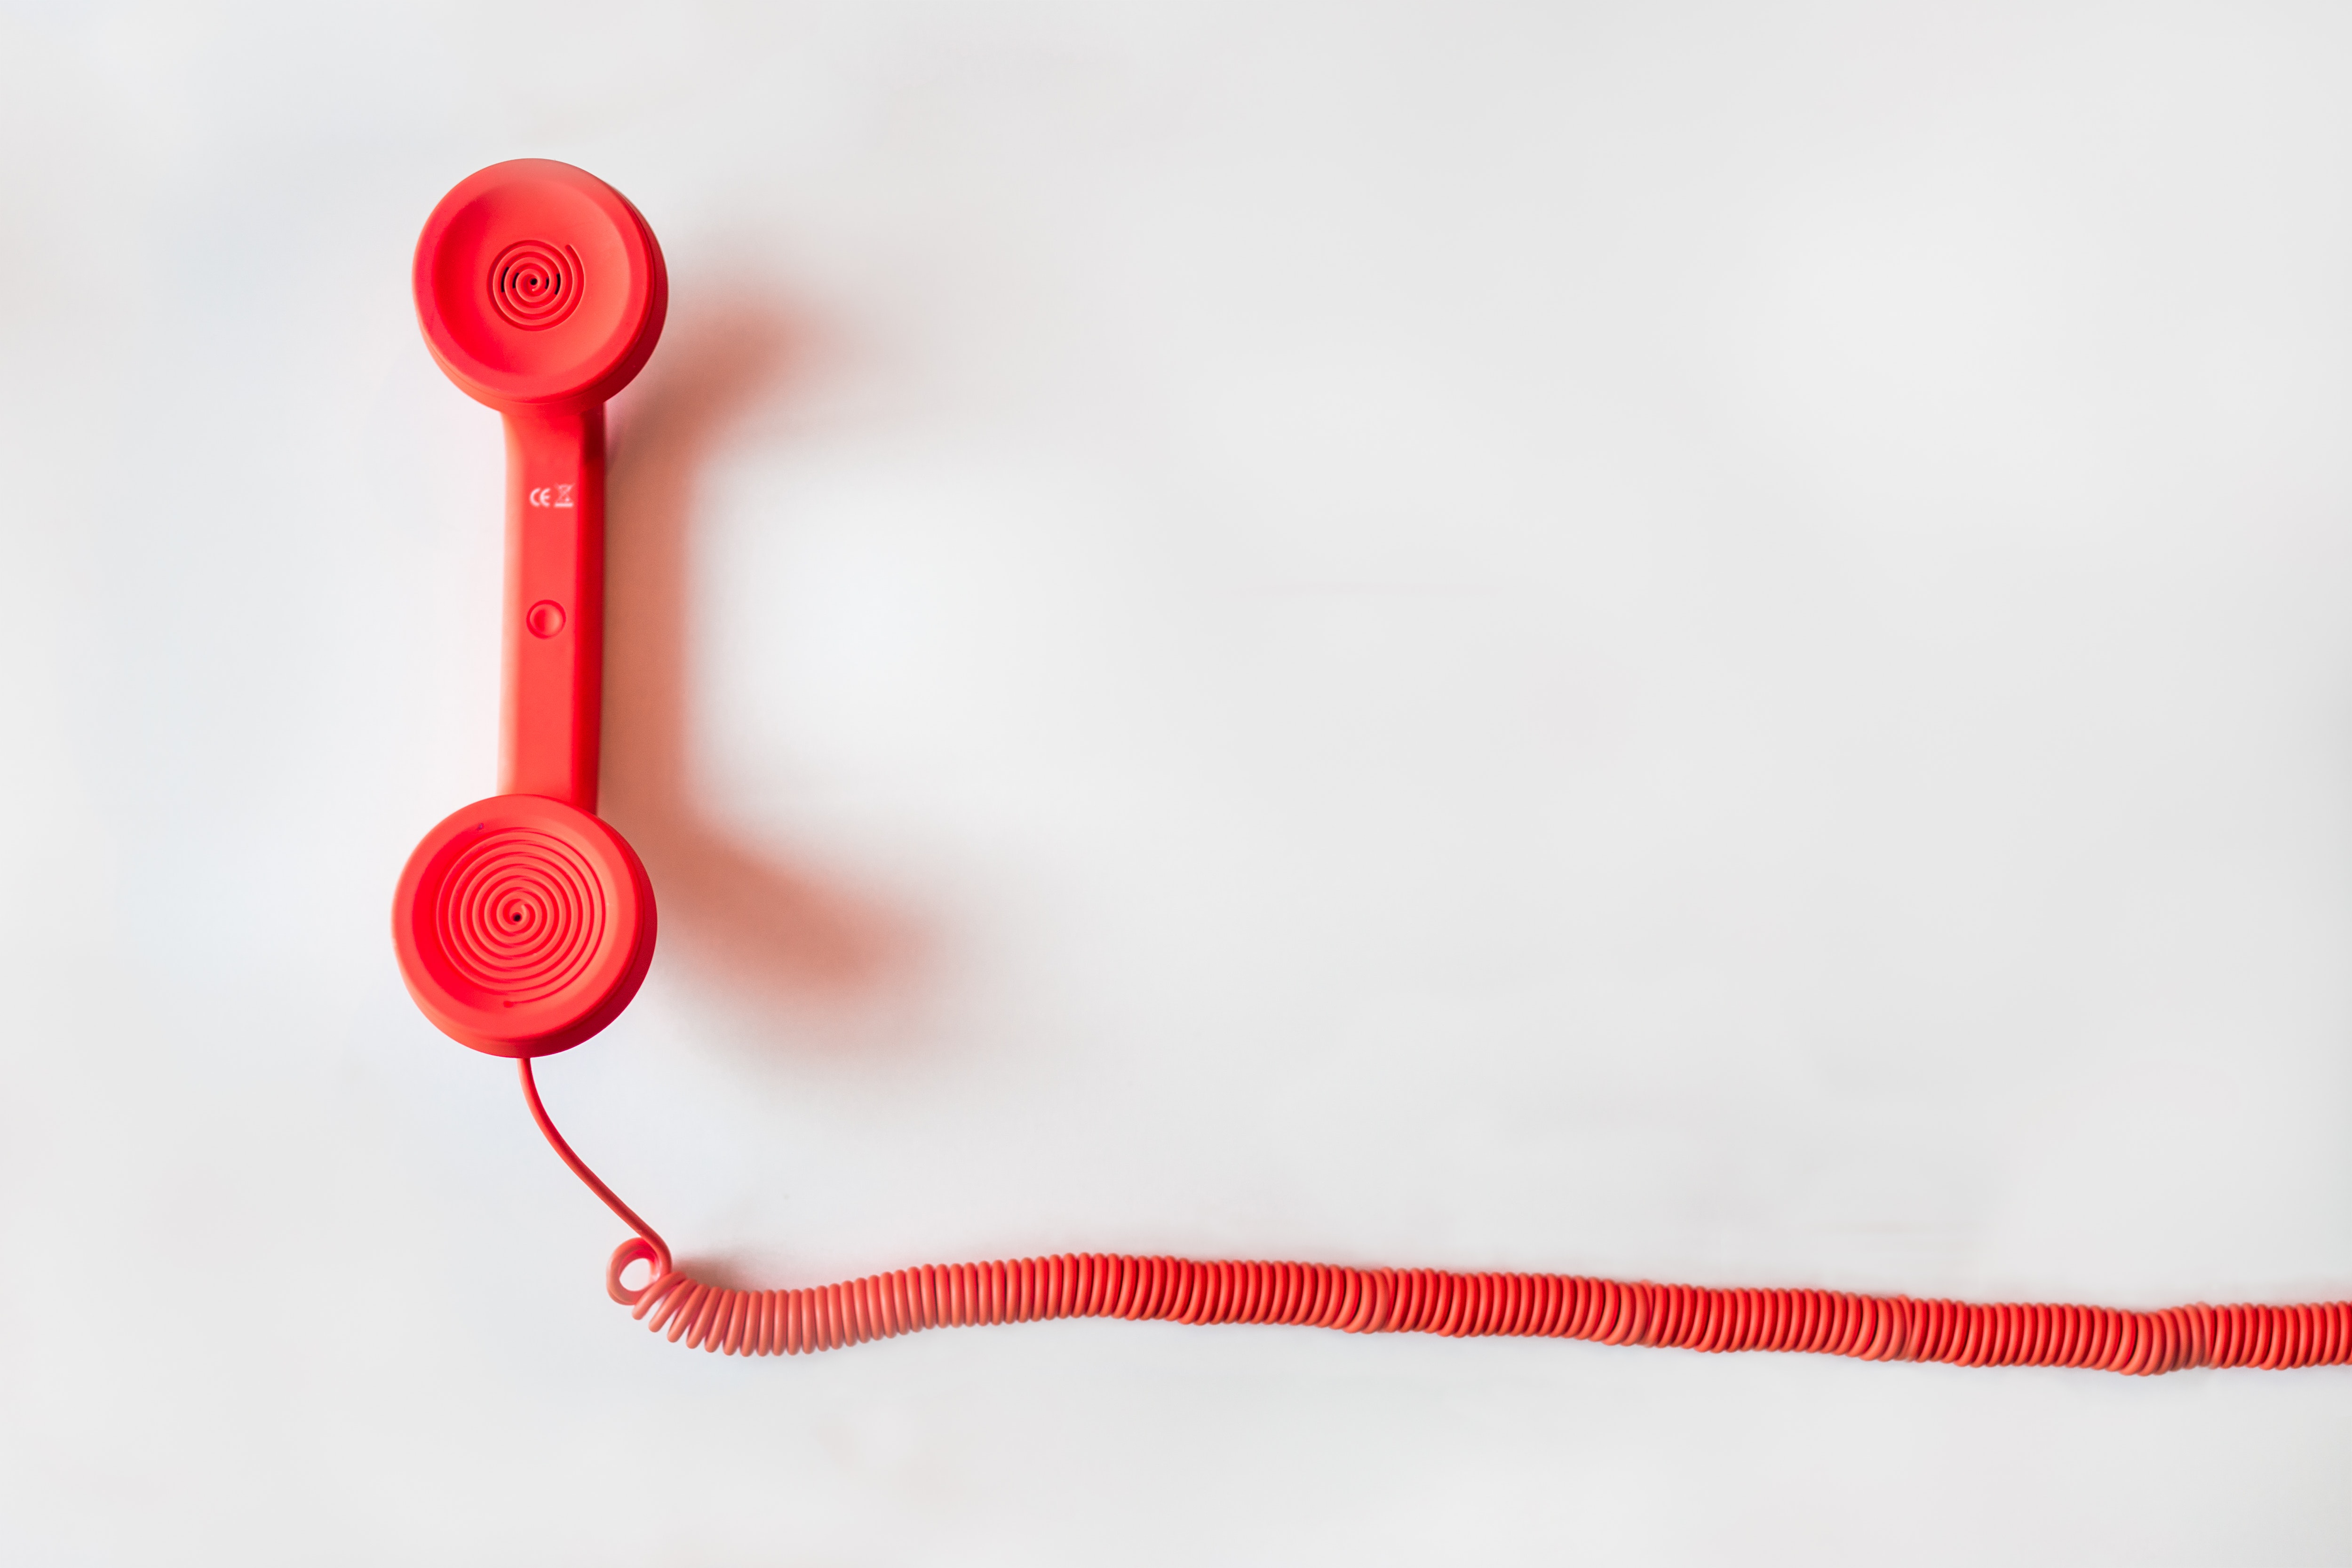 Stock photo of a red telephone with a red telephone wire on a plain white background.